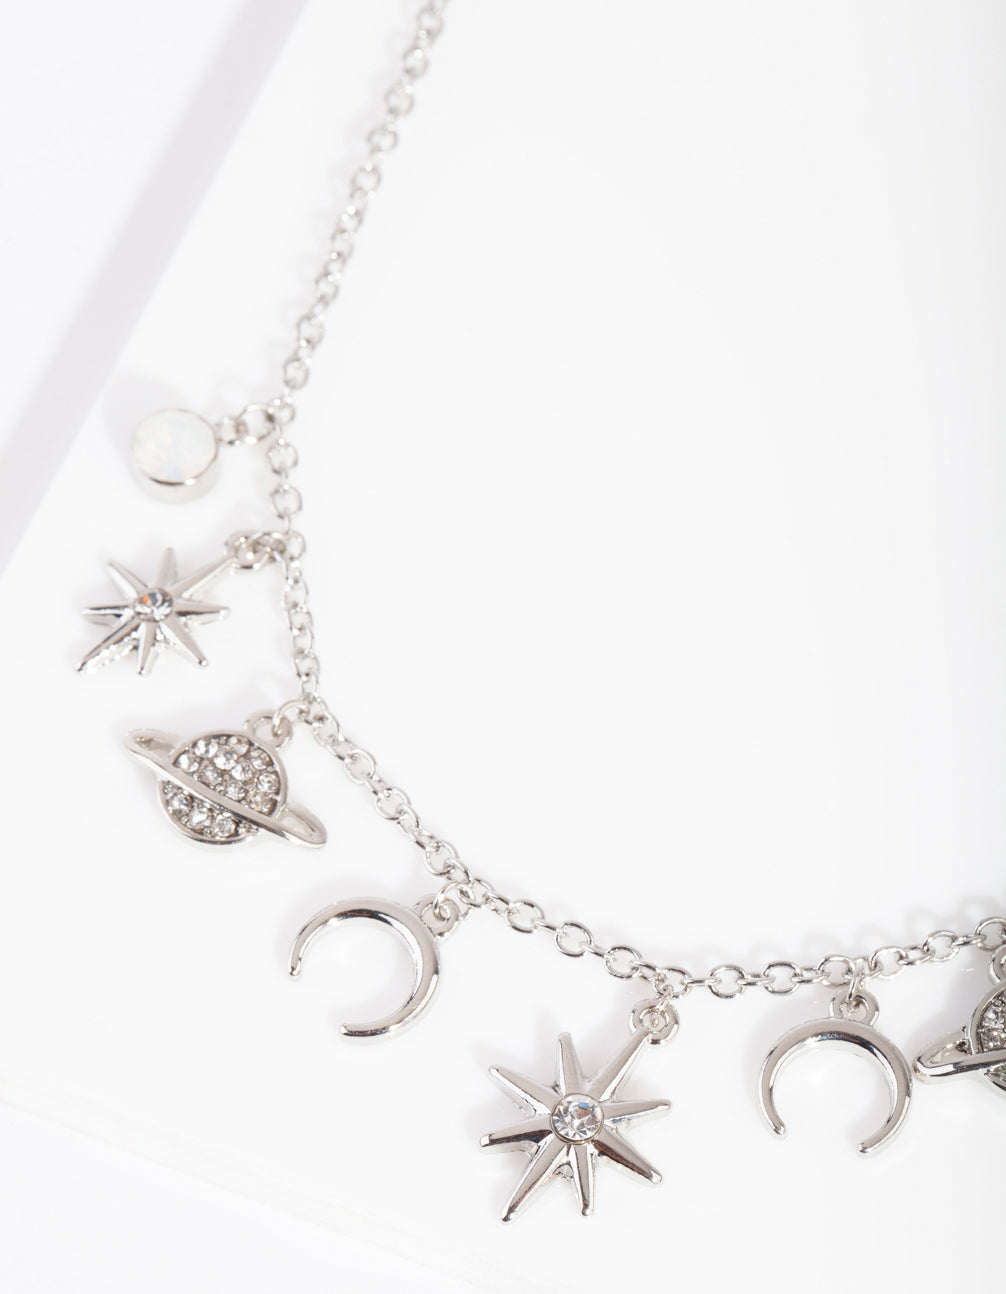 Rhodium Celestial Charm Necklace